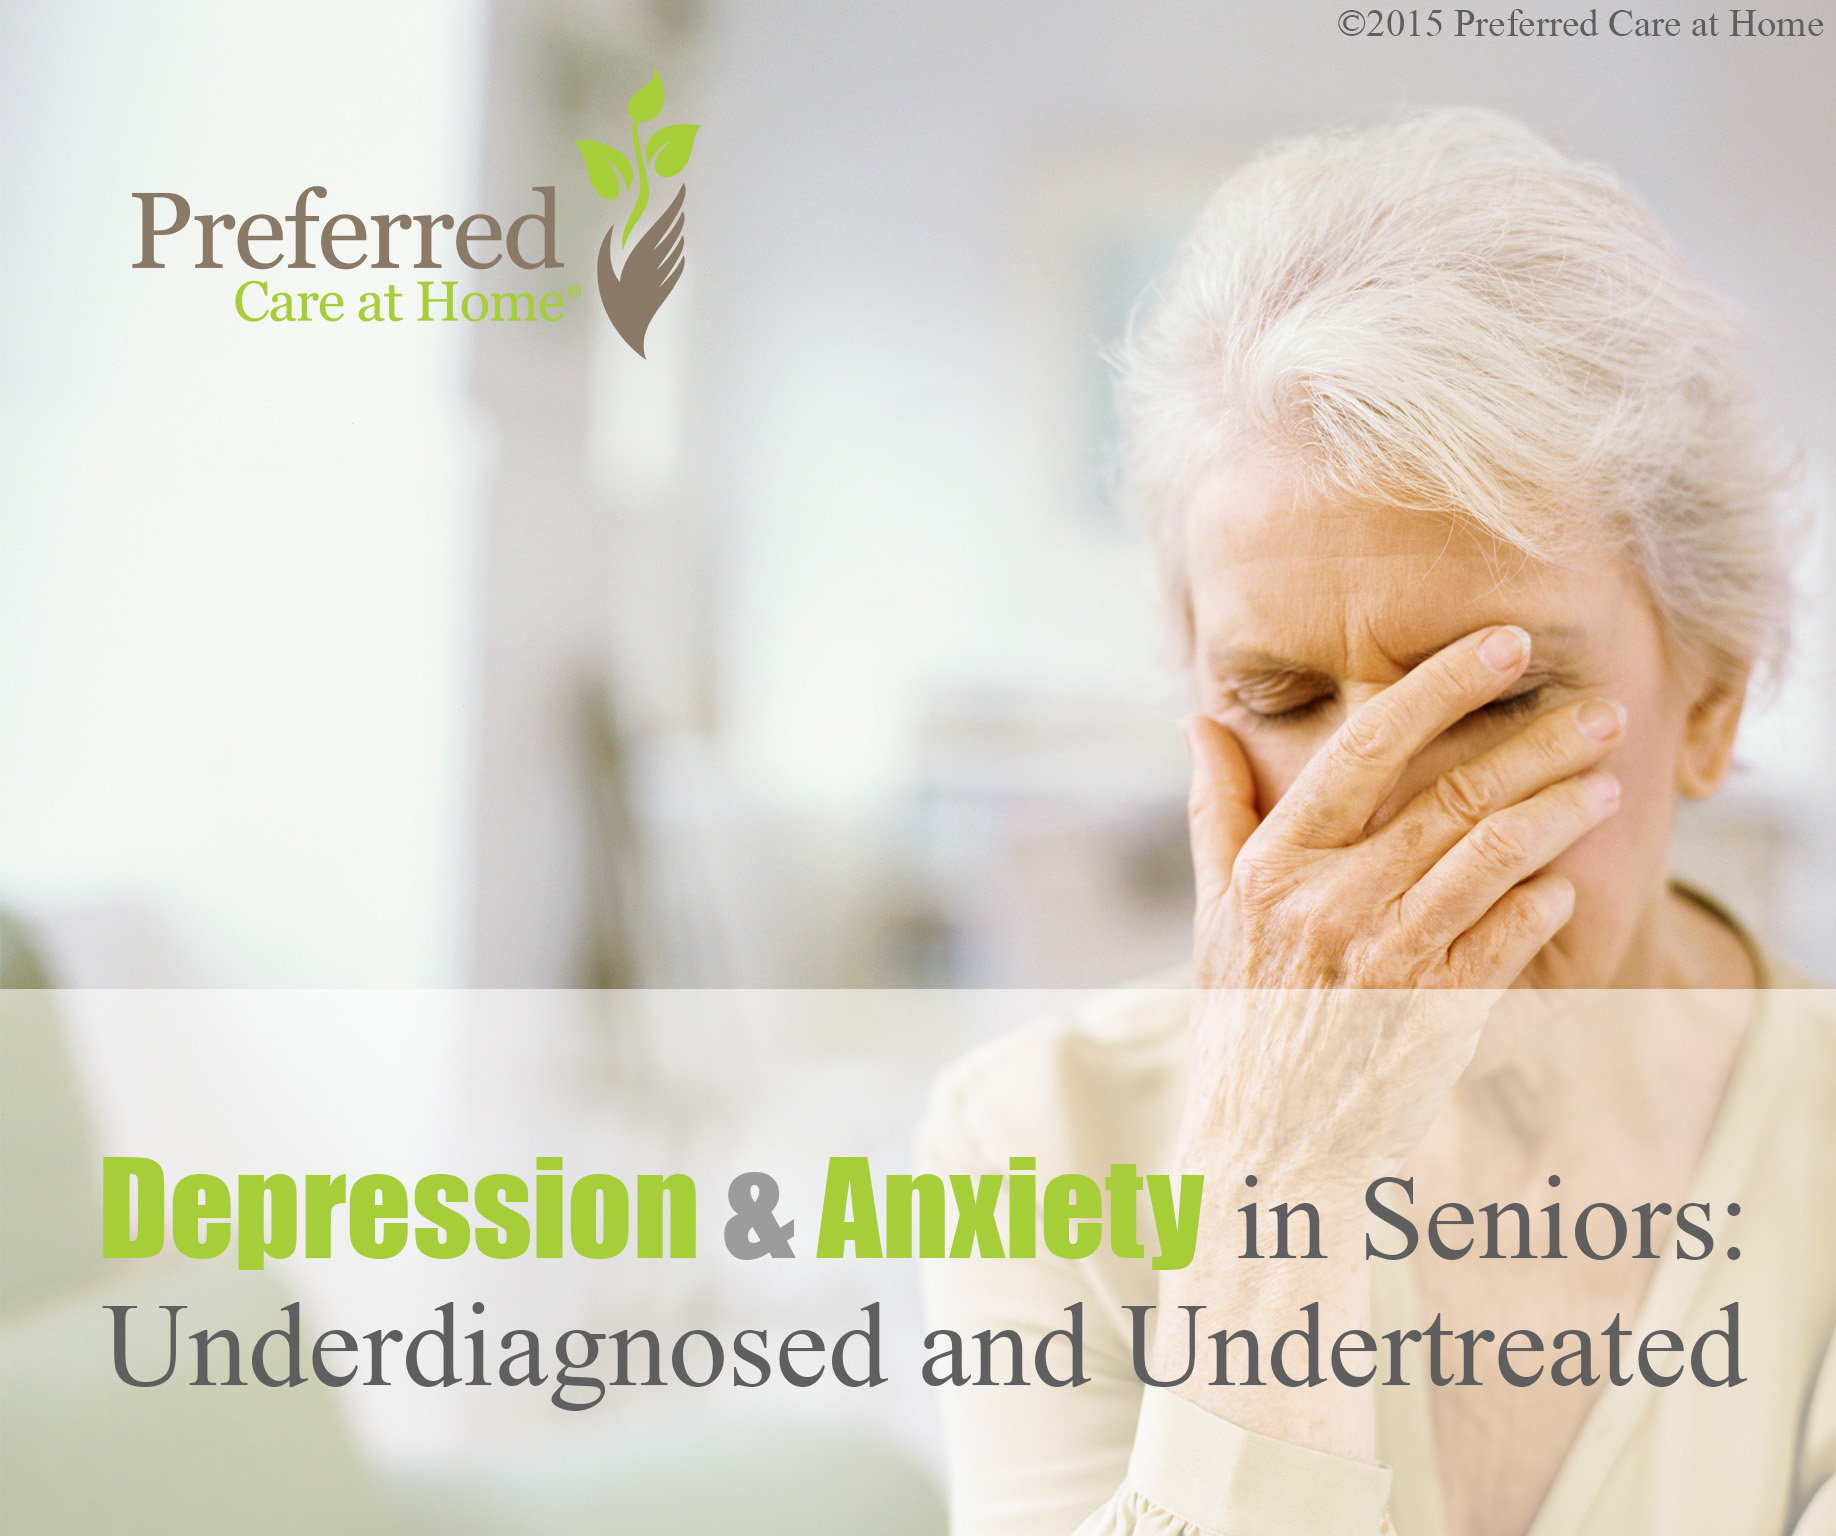 Depression and Anxiety in Seniors: Underdiagnosed and Undertreated